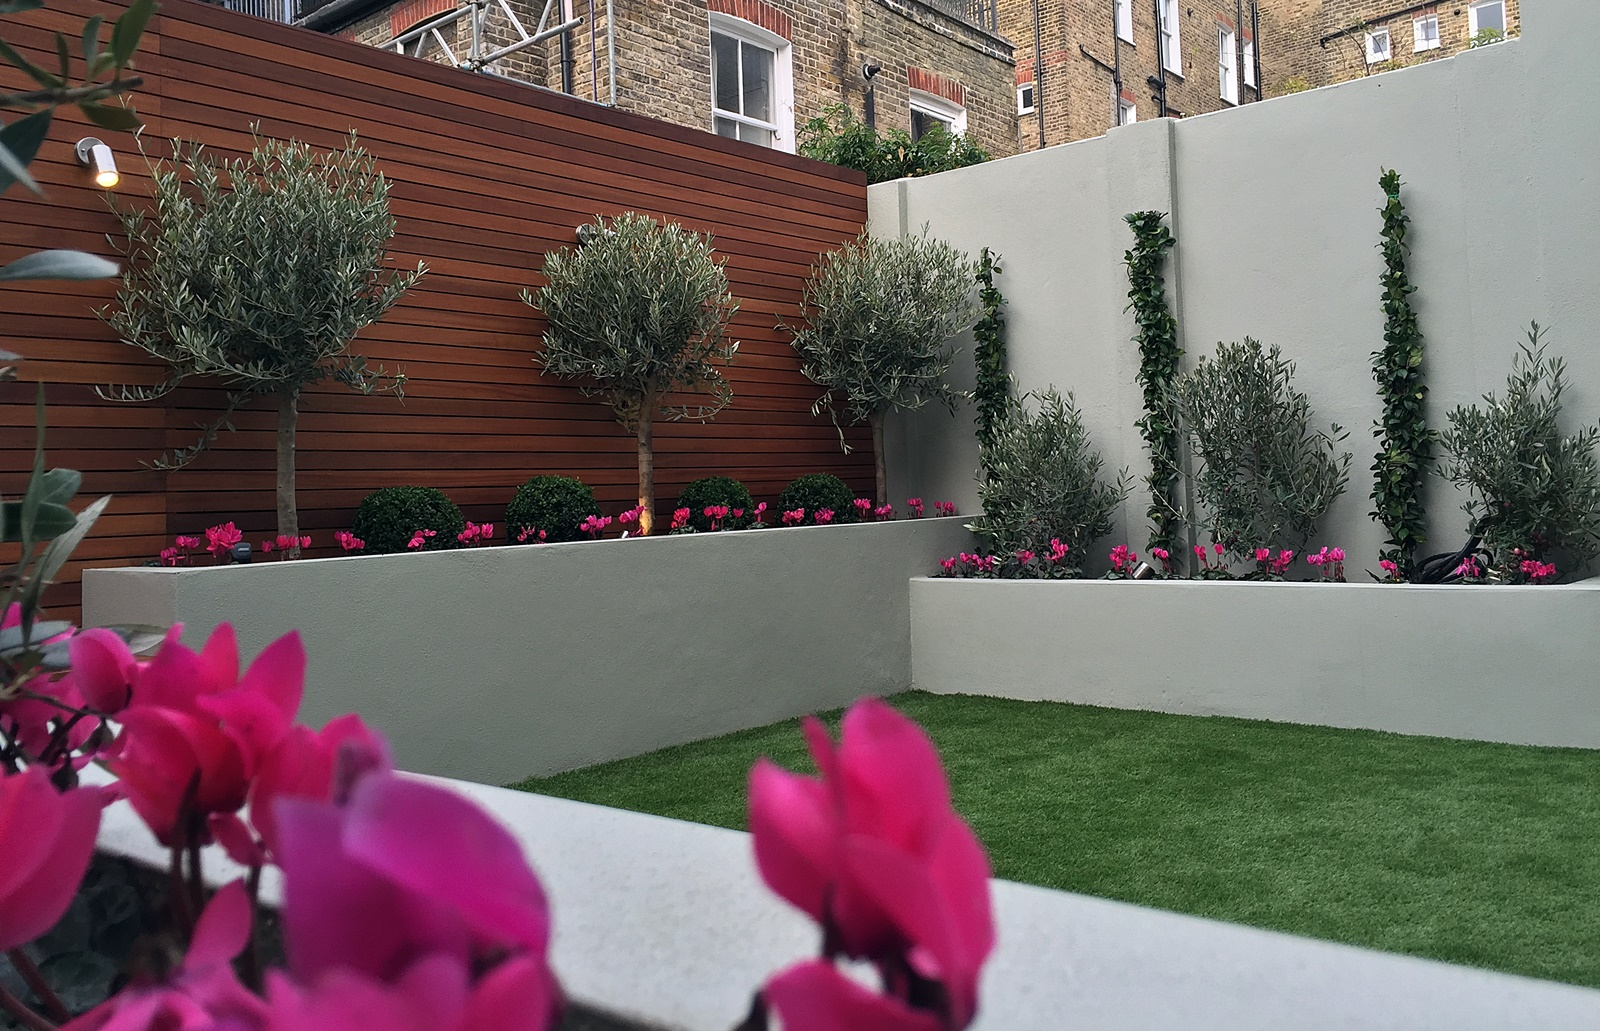 raised render block beds artificial grass lawn olive trees buxus topiary small modern garden designer desihn ideas battersea clapham balham dulwich london